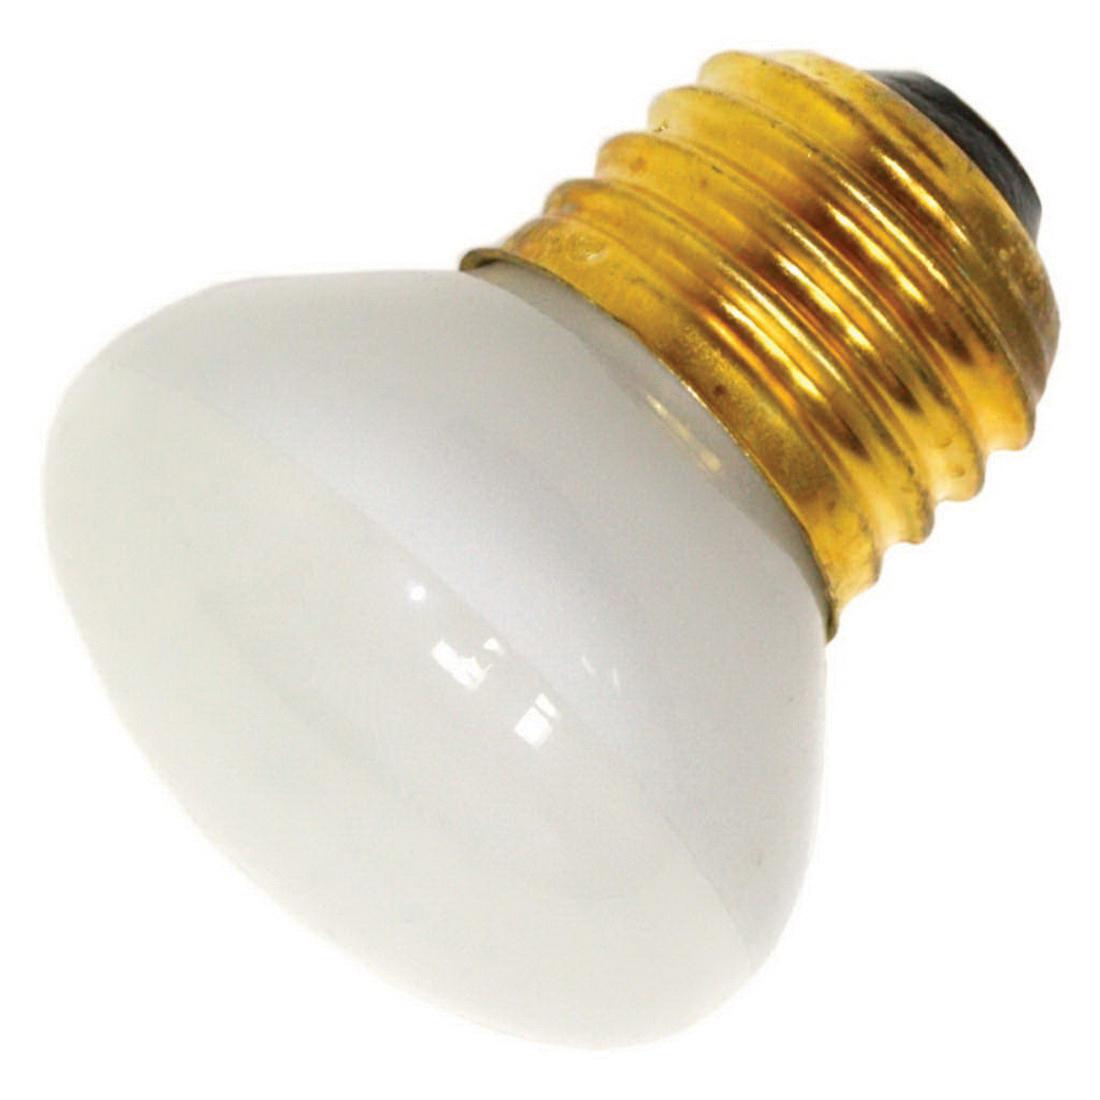 Philips Lighting 415380 R14 Incandescent Lamp 40 Watt E26 Medium Base 250 Lumens 2700k Frosted Lamps Bulbs And Drivers